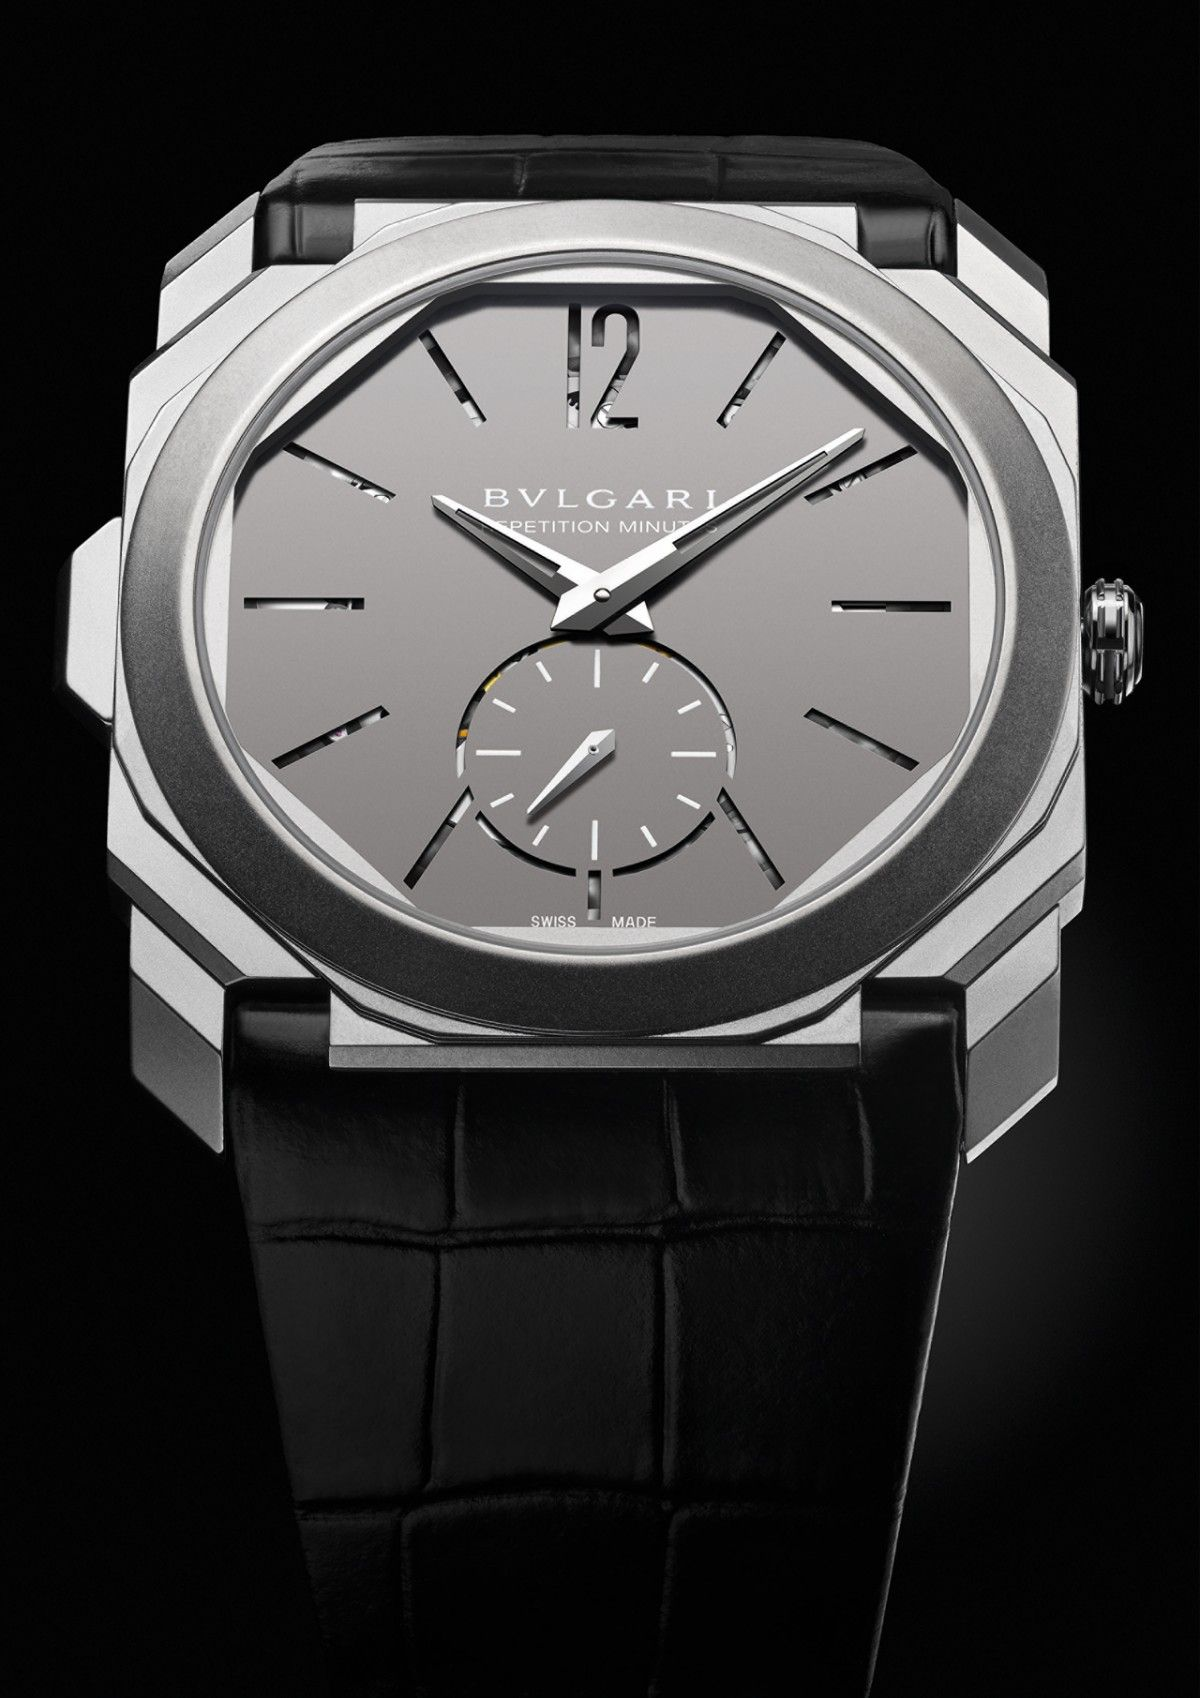 626baffd9f6 Bulgari Octo Finissimo Minute Repeater sets world record for thinnest hand  wound minute repeater